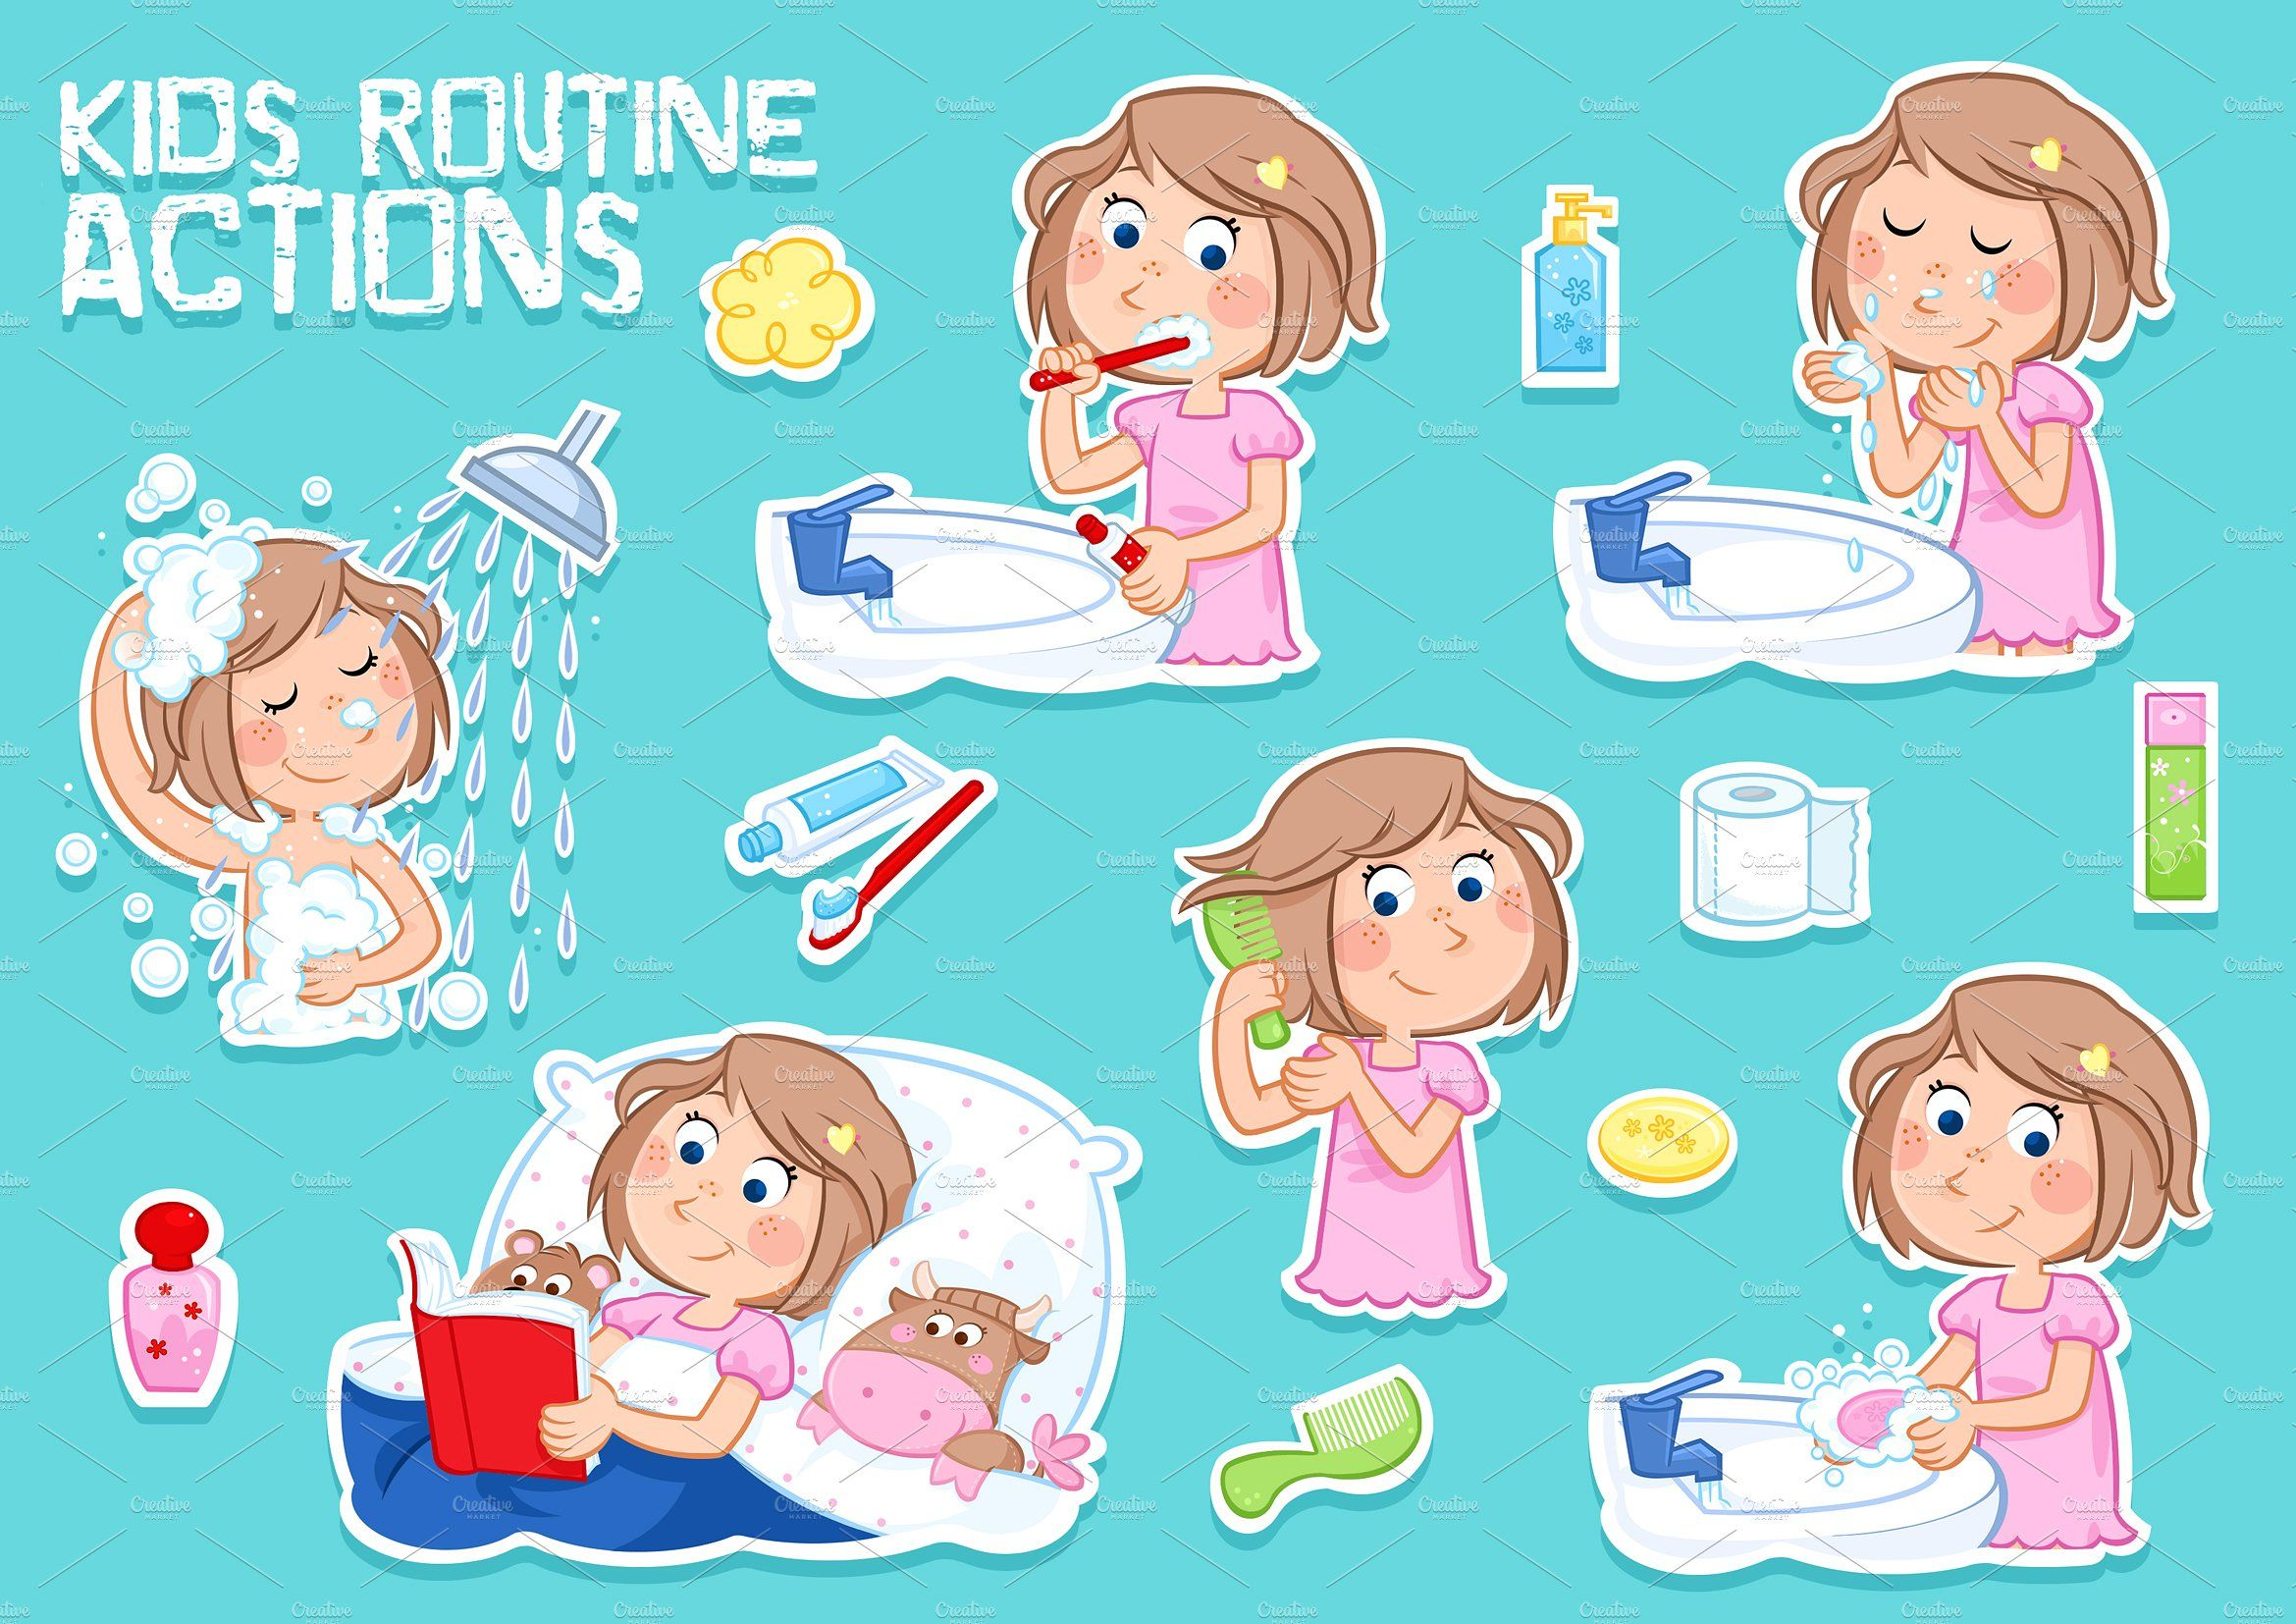 Daily routine actions #story#combing#reading#bedtime.